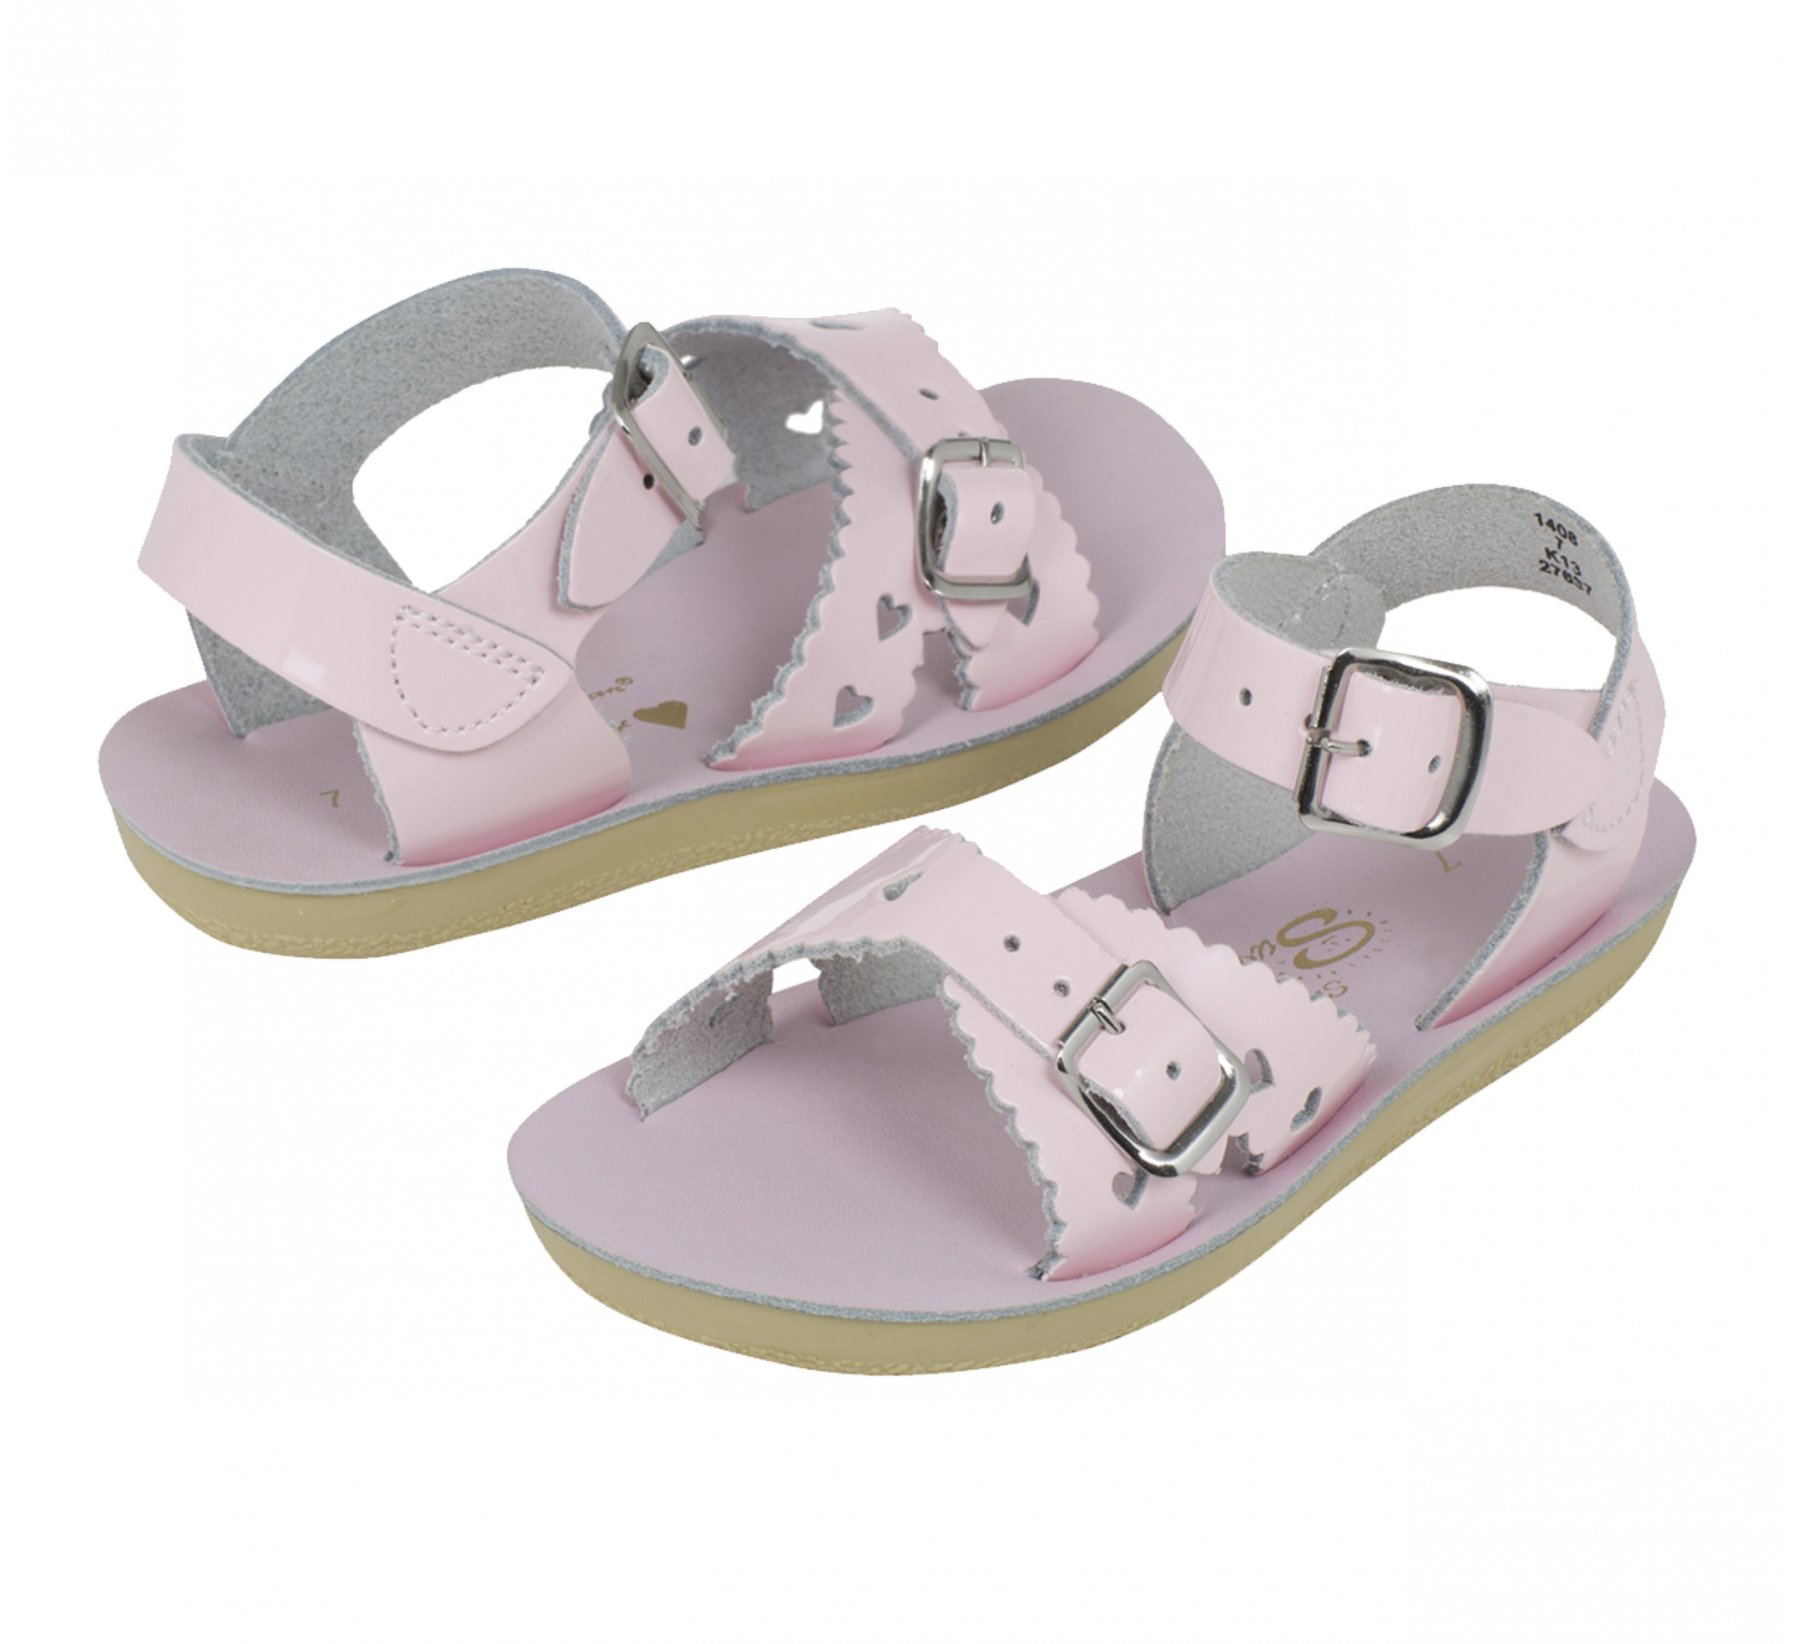 Sweetheart Merah Jambu Berkilat - Salt Water Sandals